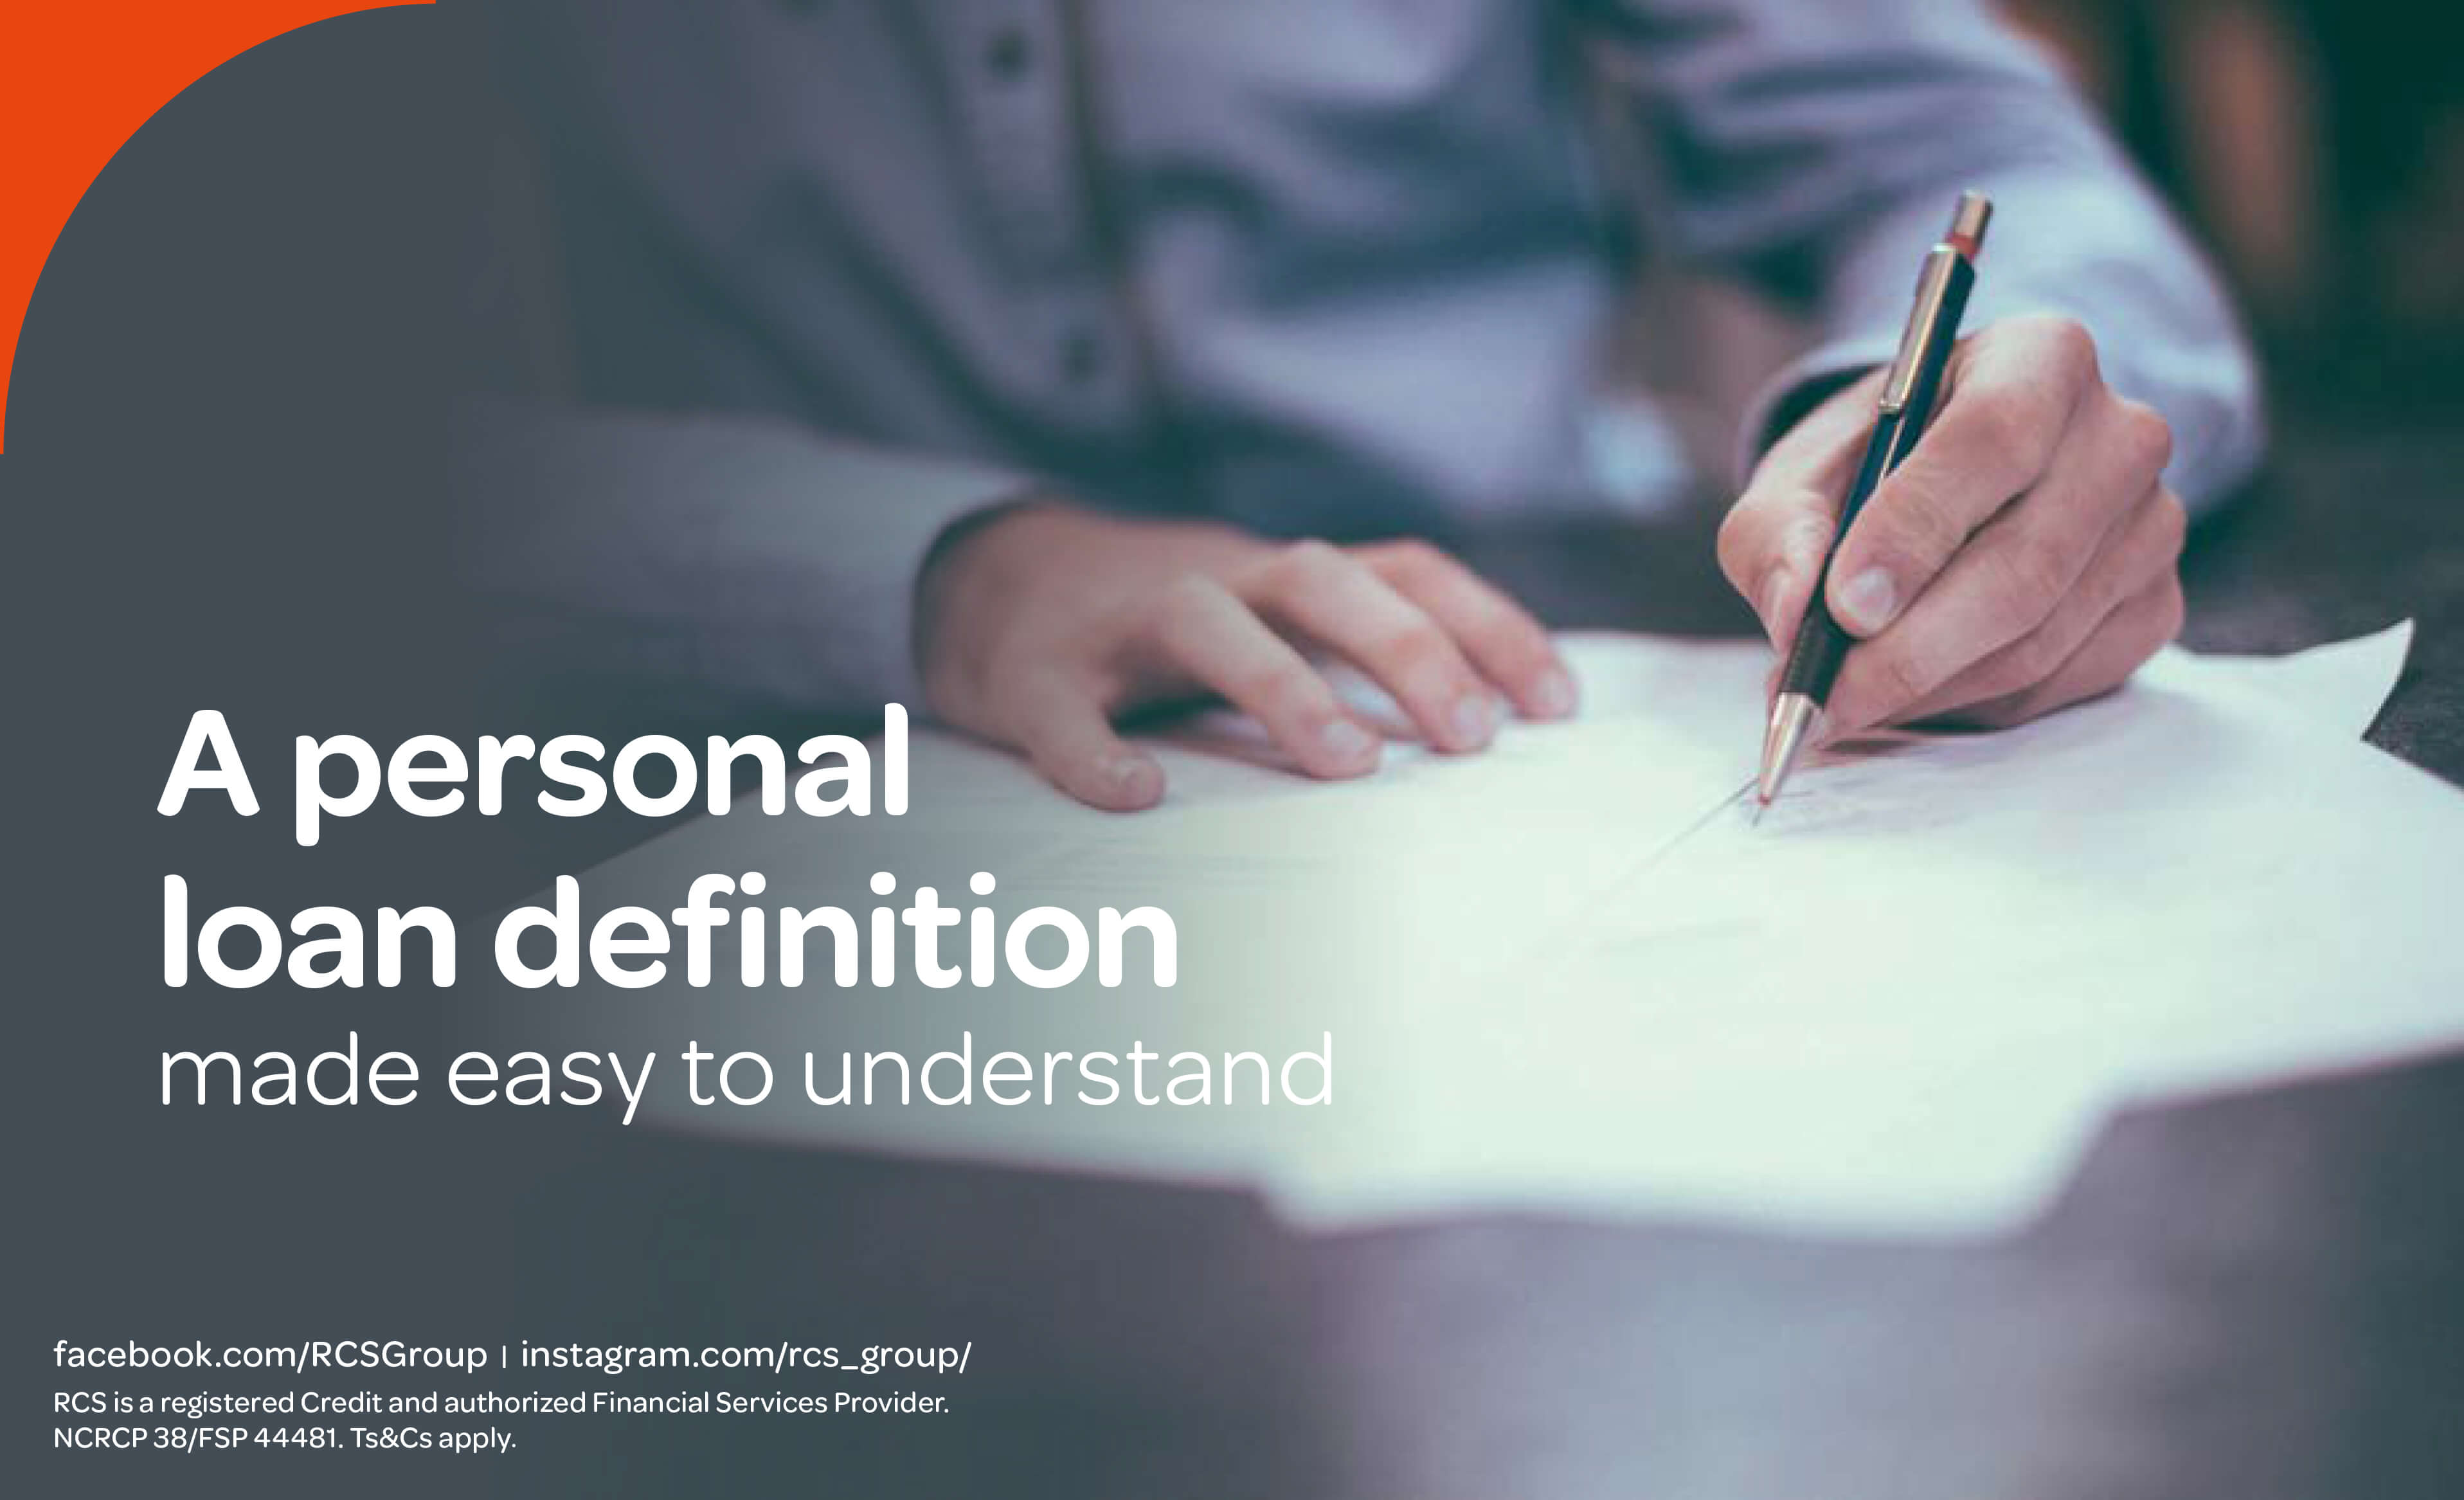 What is the definition of a personal loan? | RCS South Africa